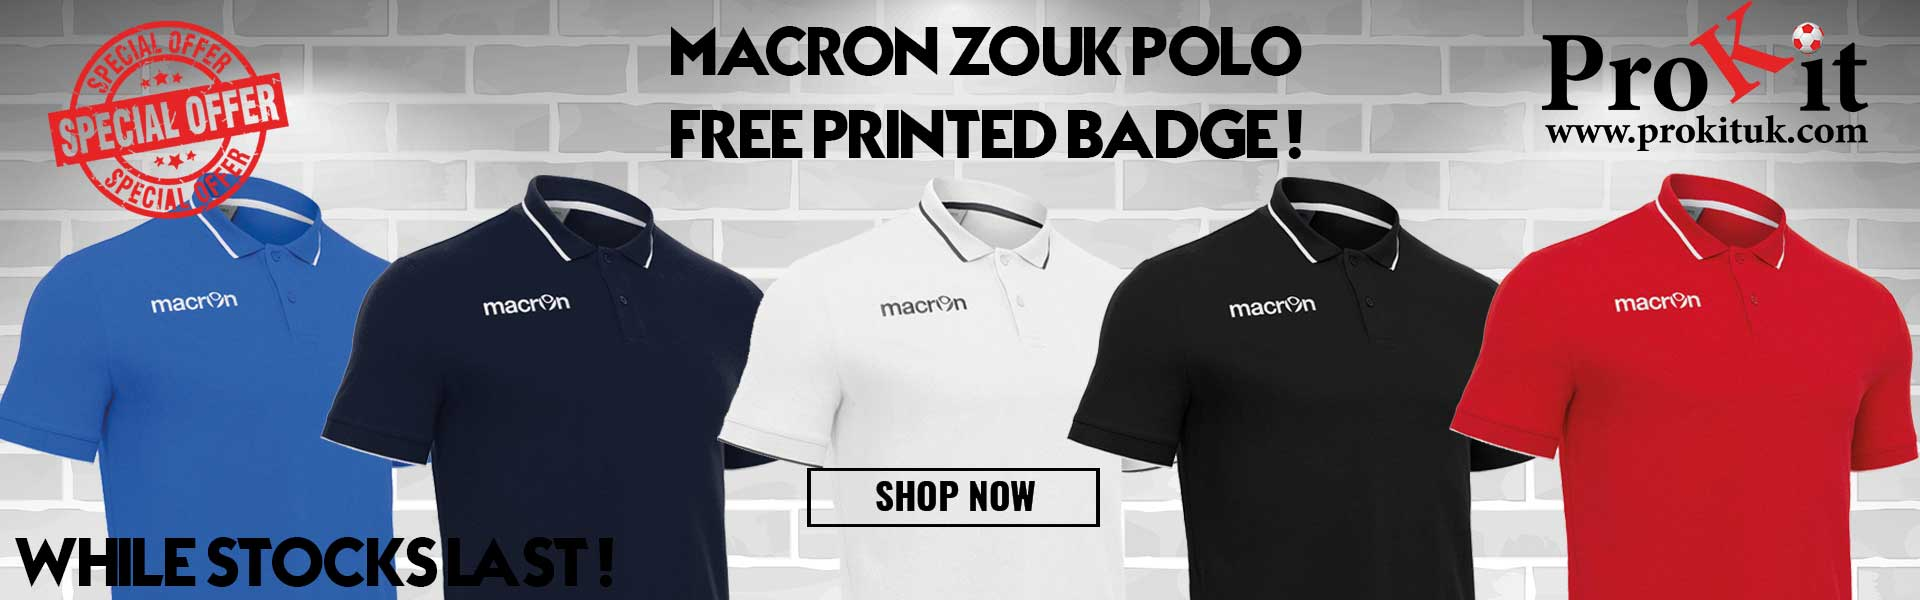 Macron Zouk Polo Offer